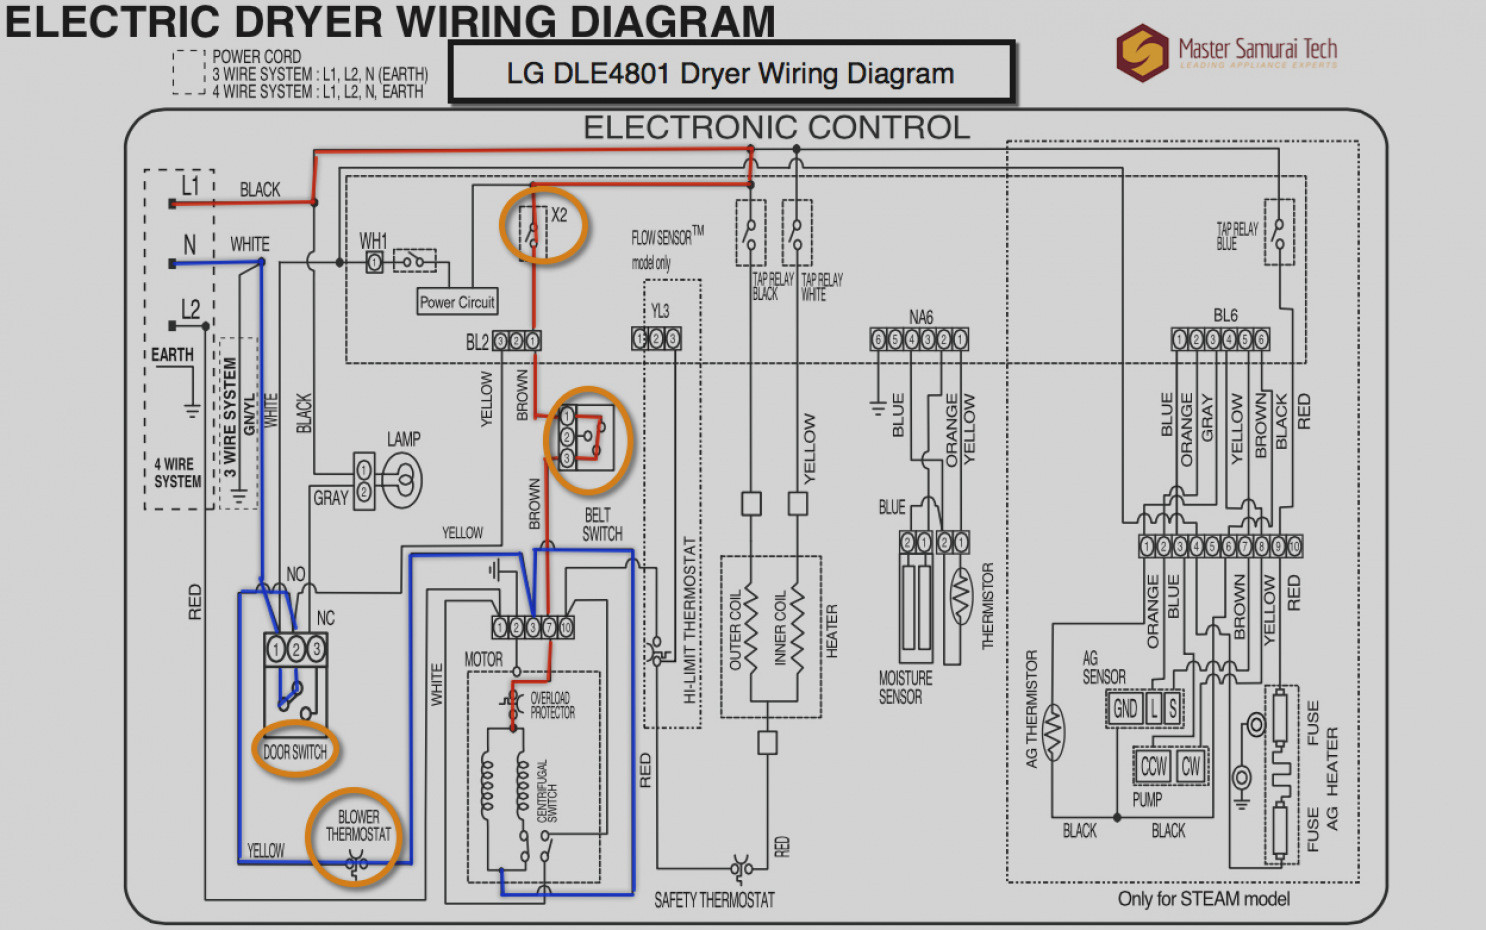 whirlpool thermistor wiring diagram diagram data schema wp duet dryer wiring diagram [ 1486 x 930 Pixel ]